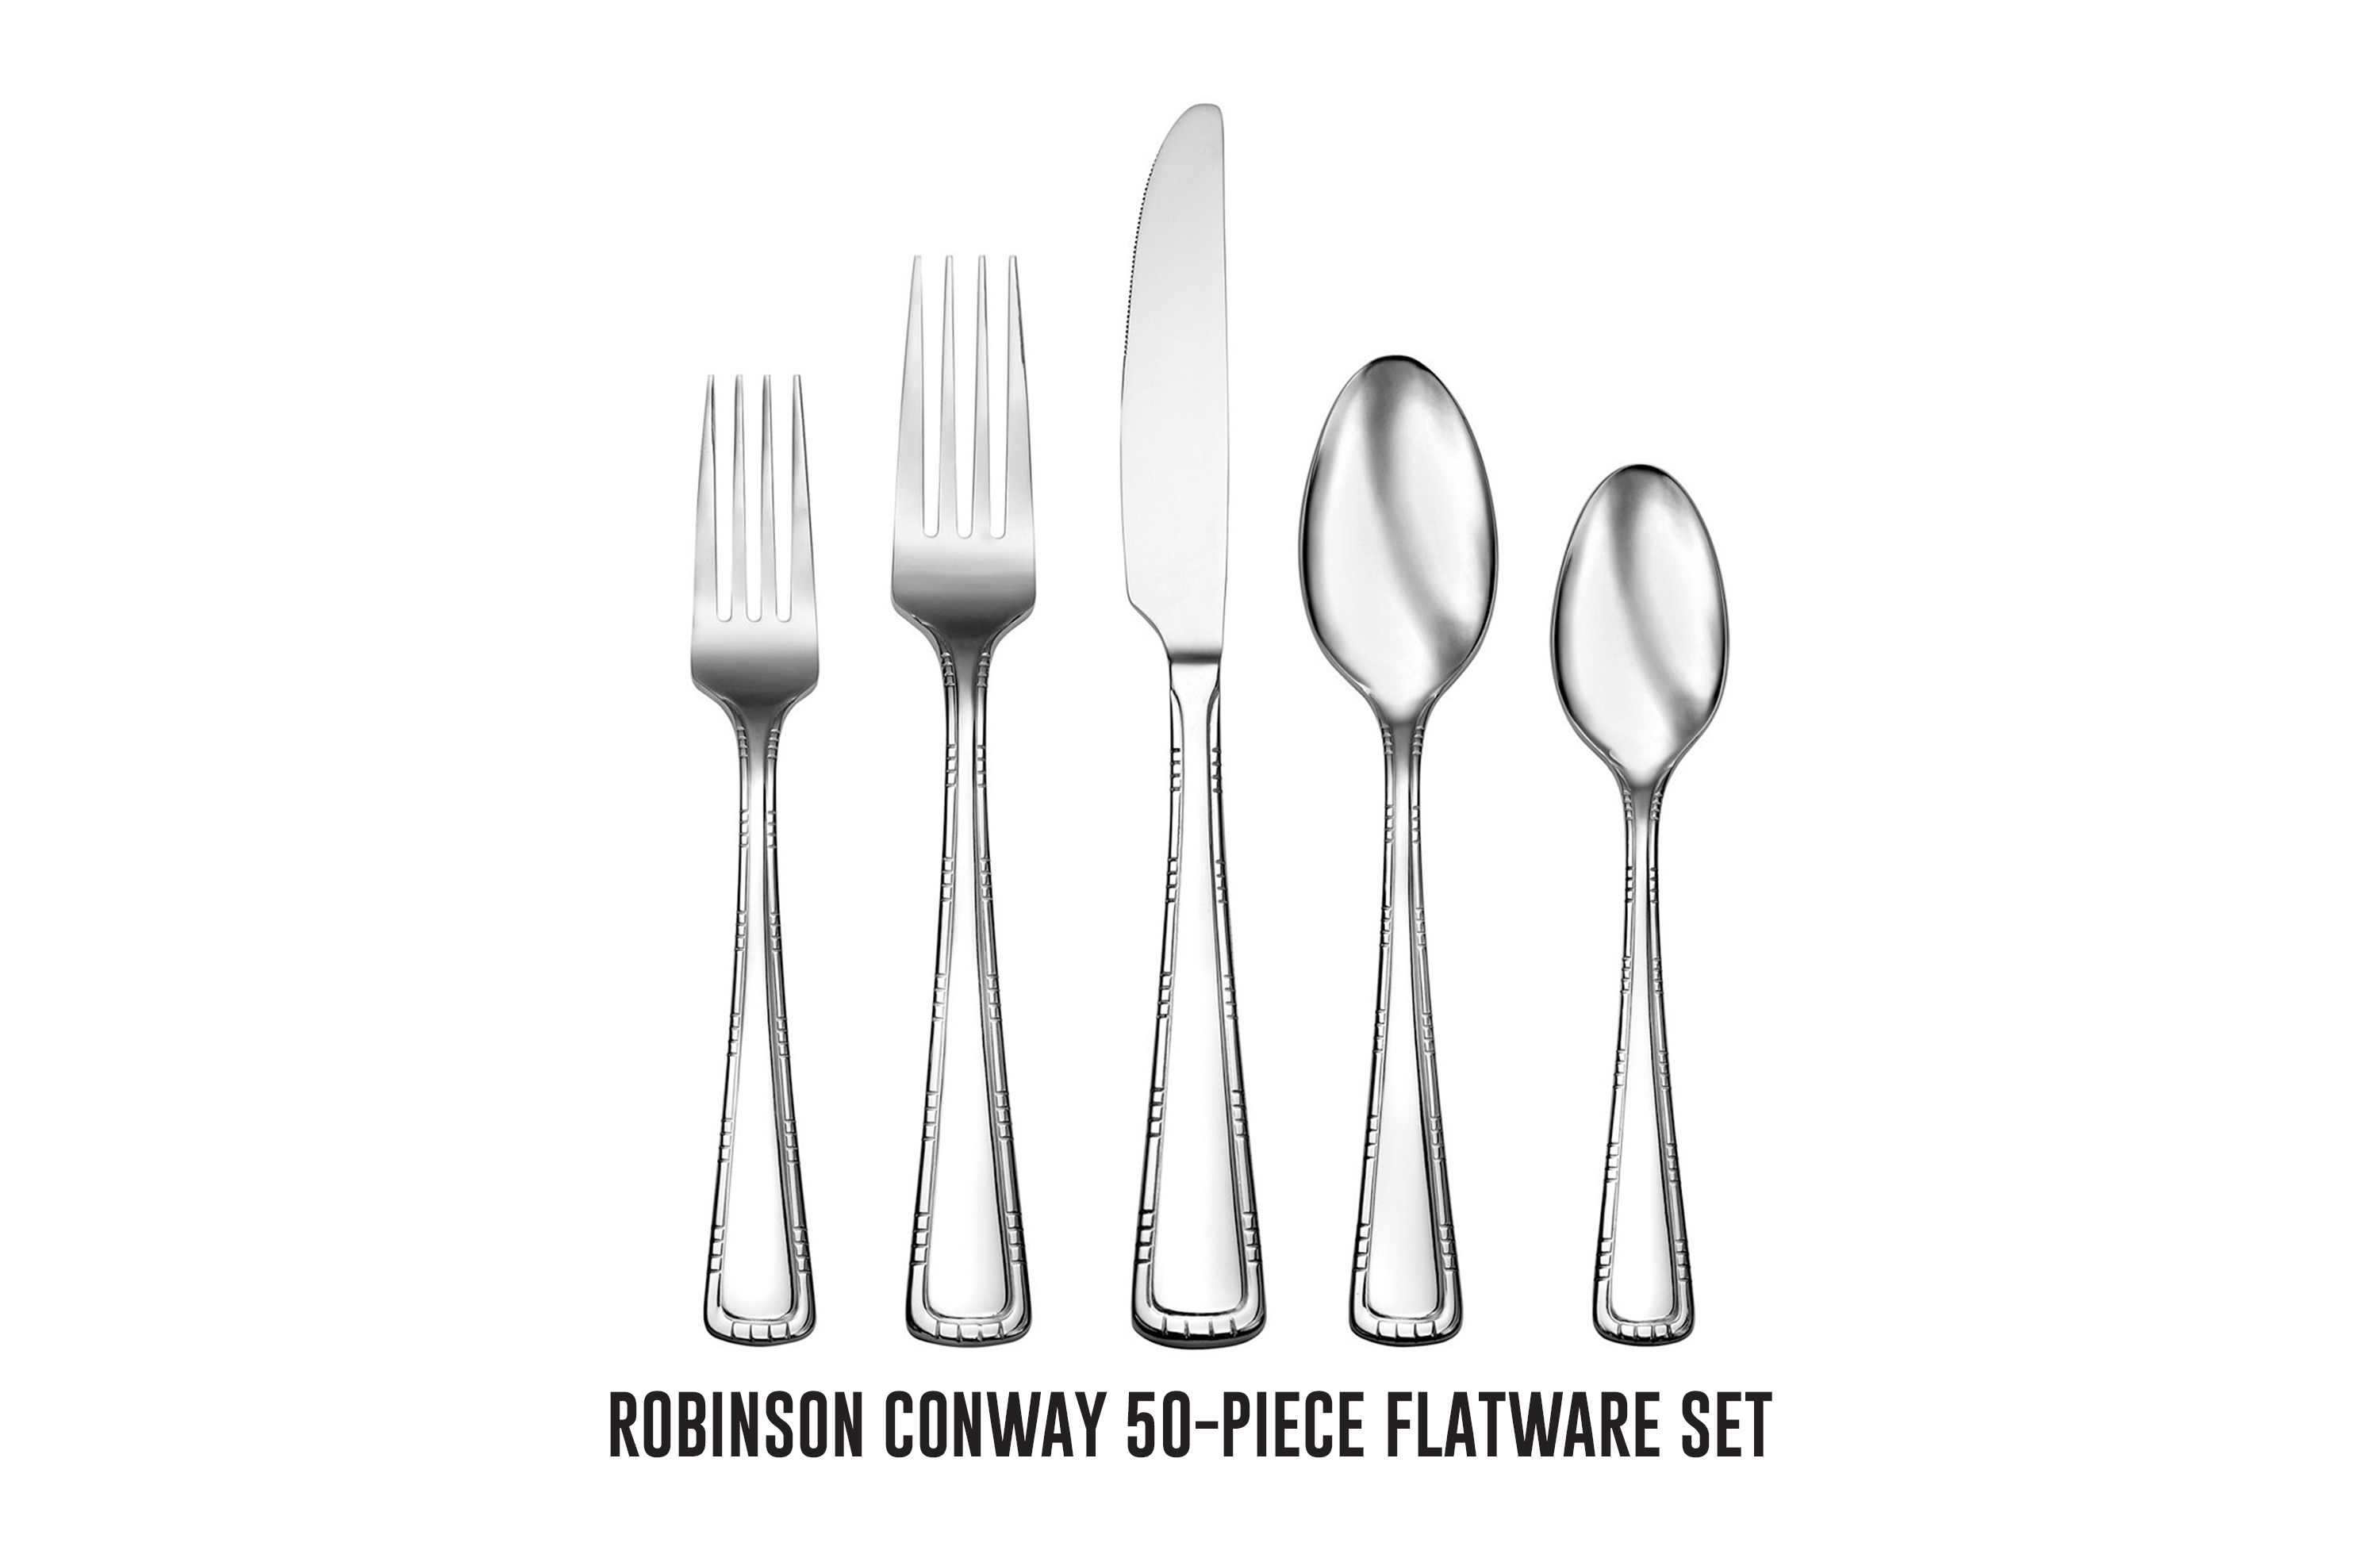 Robinson Conway 50-piece flatware set